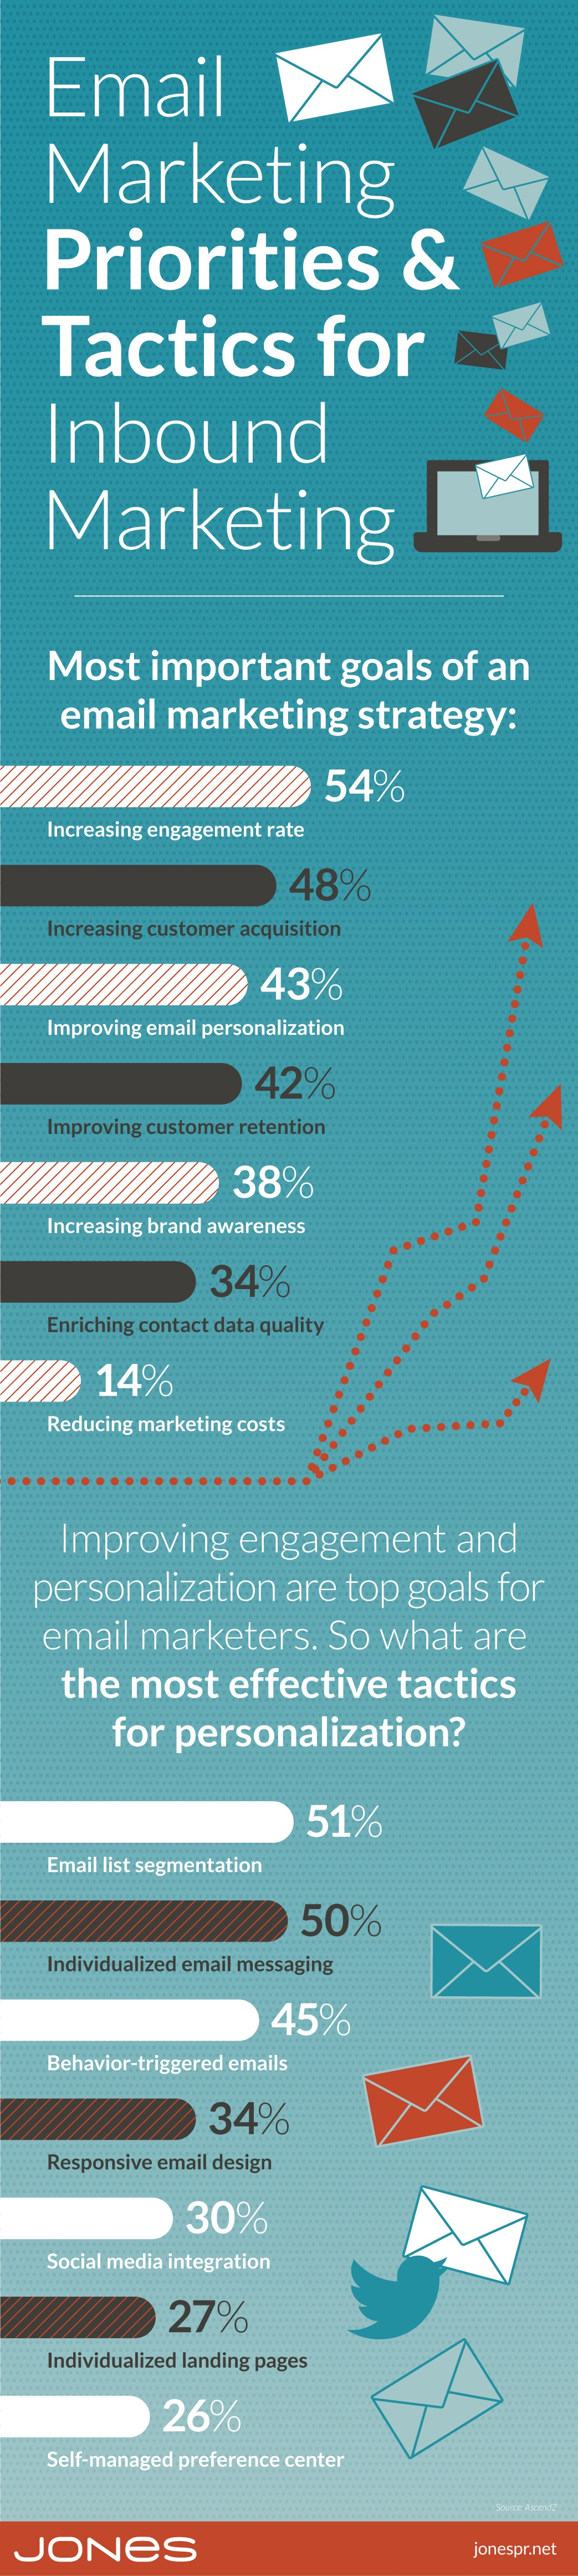 jones-infographic-email-marketing-priorities-inbound